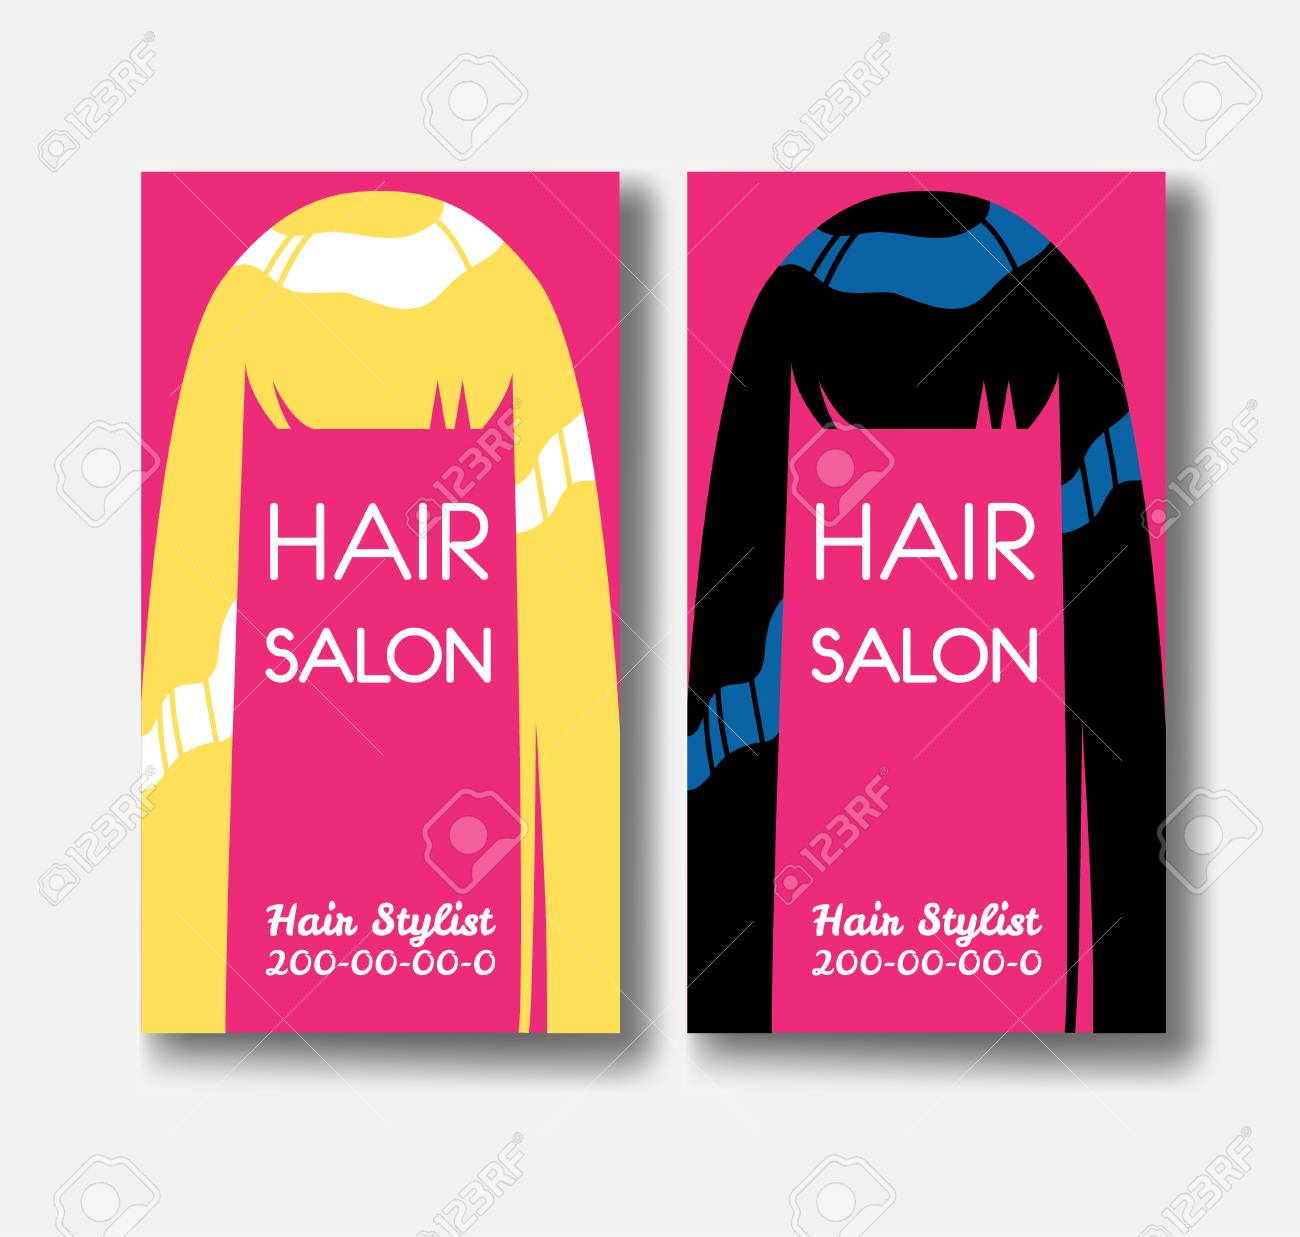 Hair salon business card templates with blonde hair and black hair salon business card templates with blonde hair and black ha stock vector 78080045 accmission Images